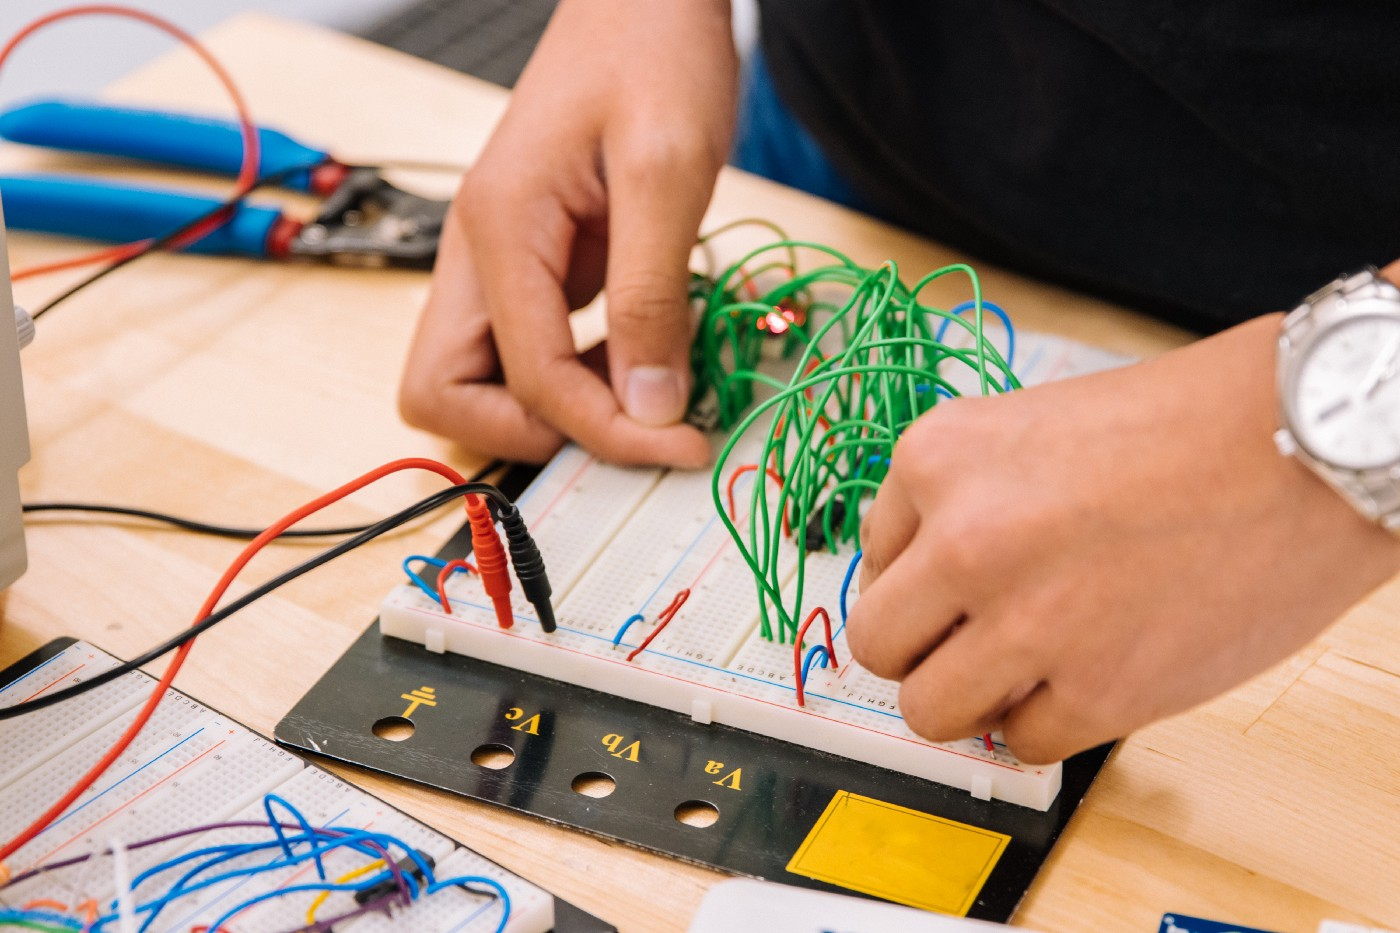 Hands connecting circuits on a circuit board